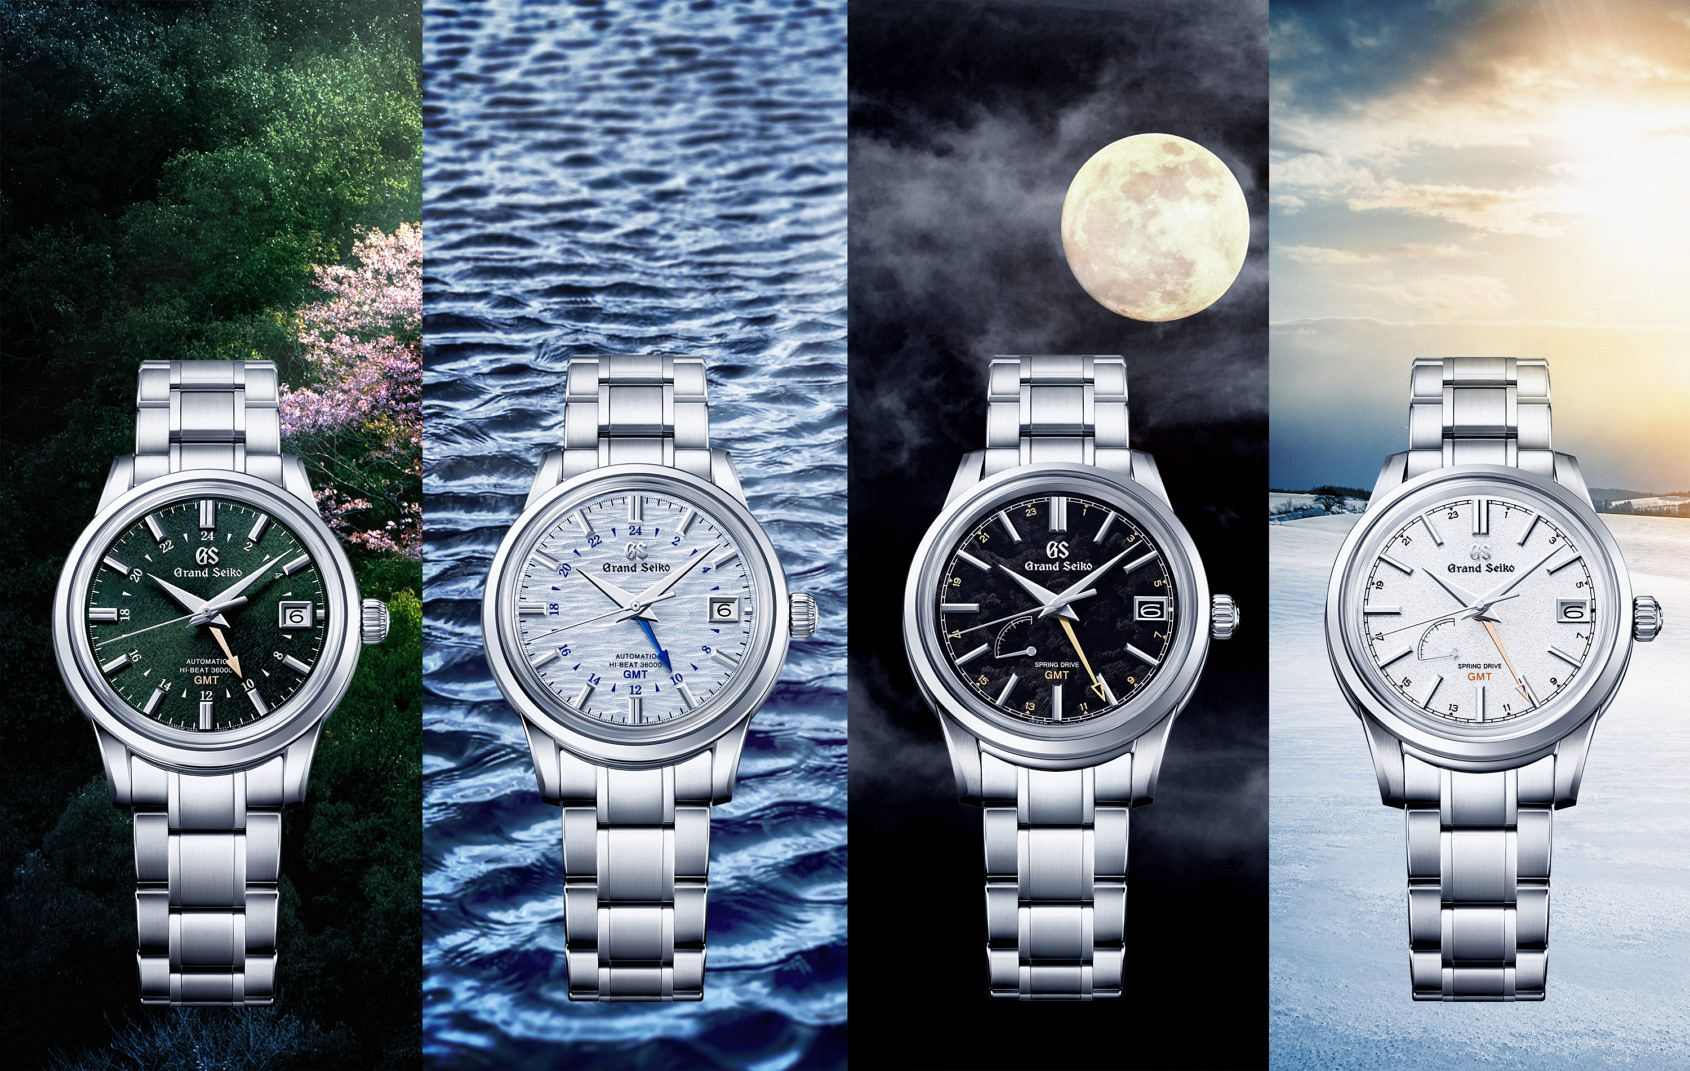 INTRODUCING: The Grand Seiko GMT Seasons Collection goes global